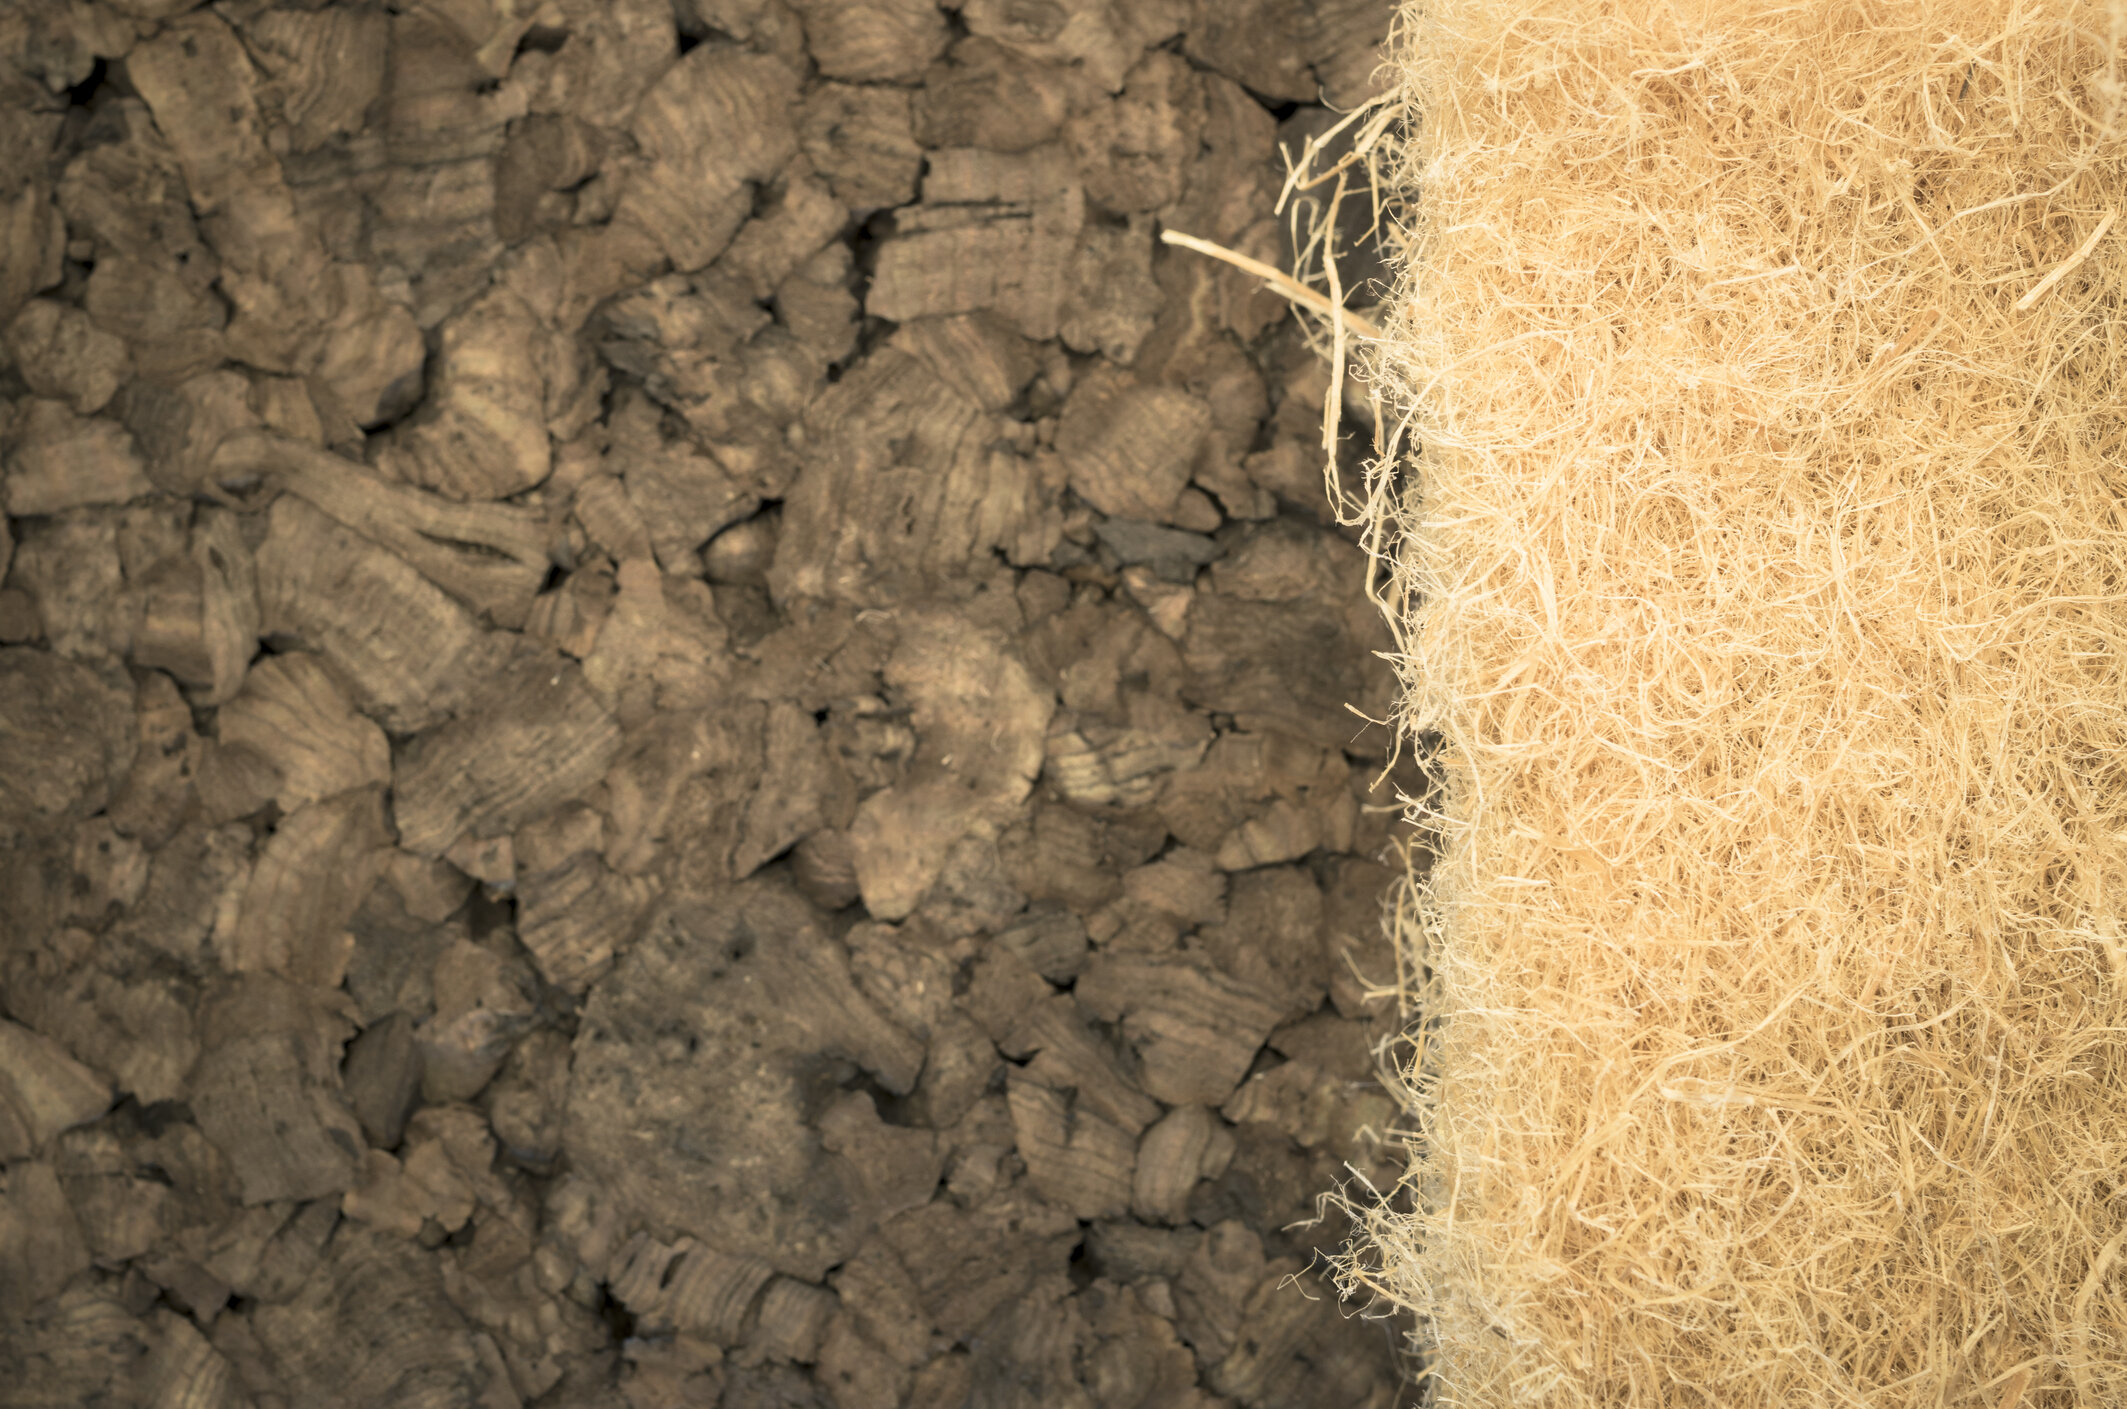 Sustainable Products - Researching and sourcing sustainable materials. Including Hempcrete and composites, cork, clay, basalt fibers, high performance building materials and other alternatives. Up front costs may be more, but the long term health and environmental benefits may be worth it. Including energy savings. Considering the full life cycle and sourcing of products weighted against the performance and durability. The less that needs to go into the landfill, the better. Even better is if it biodegrades in the garden.